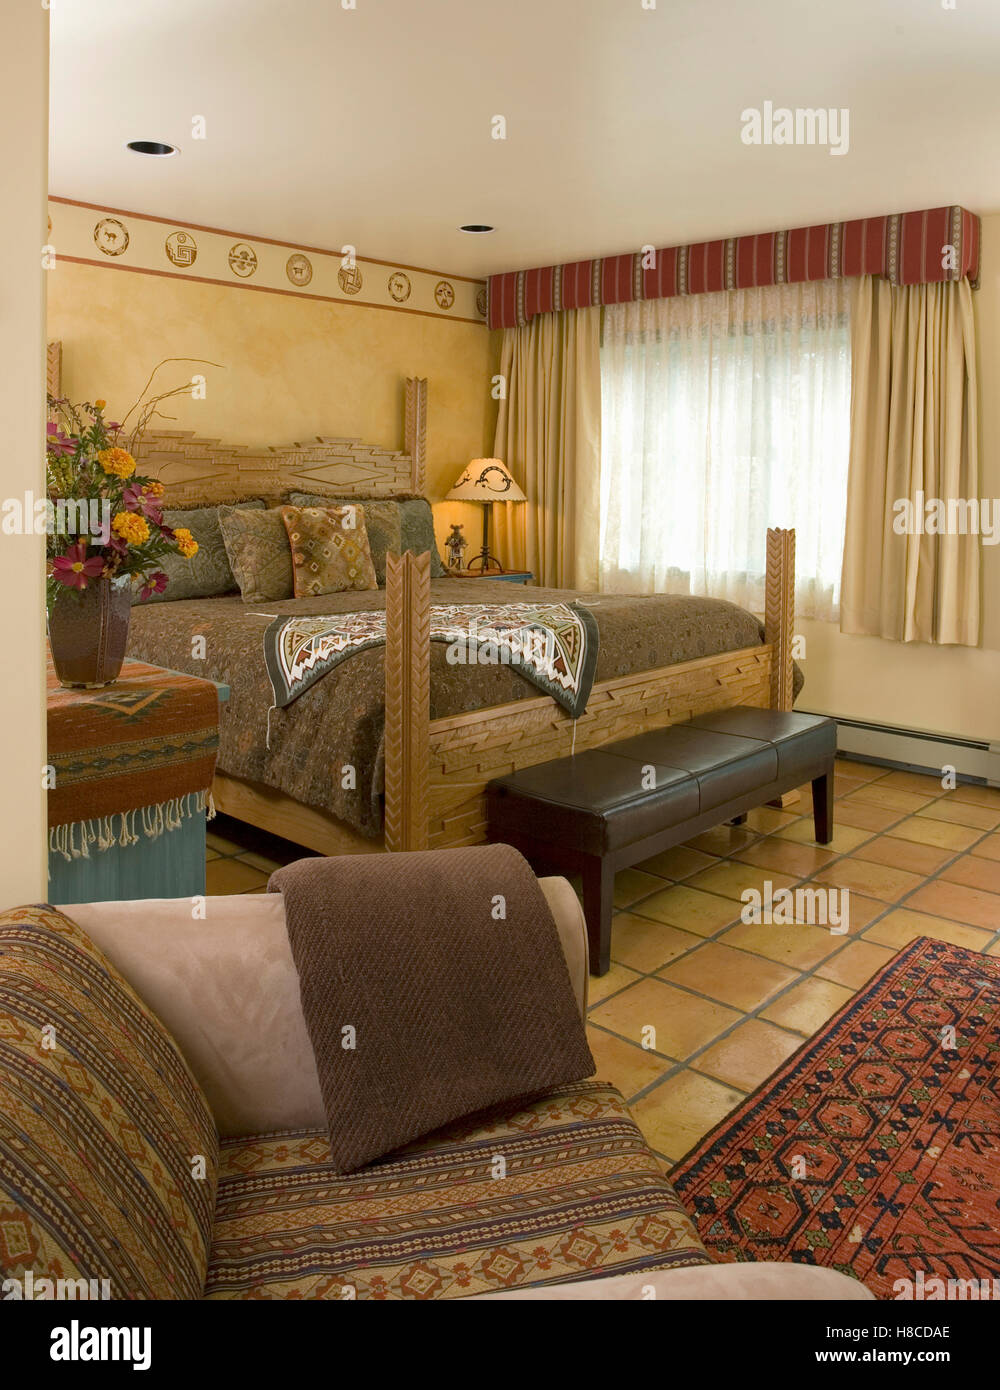 Wood framed bed by window in bedroom with tiled floor, Santa Fe, New Mexico. - Stock Image